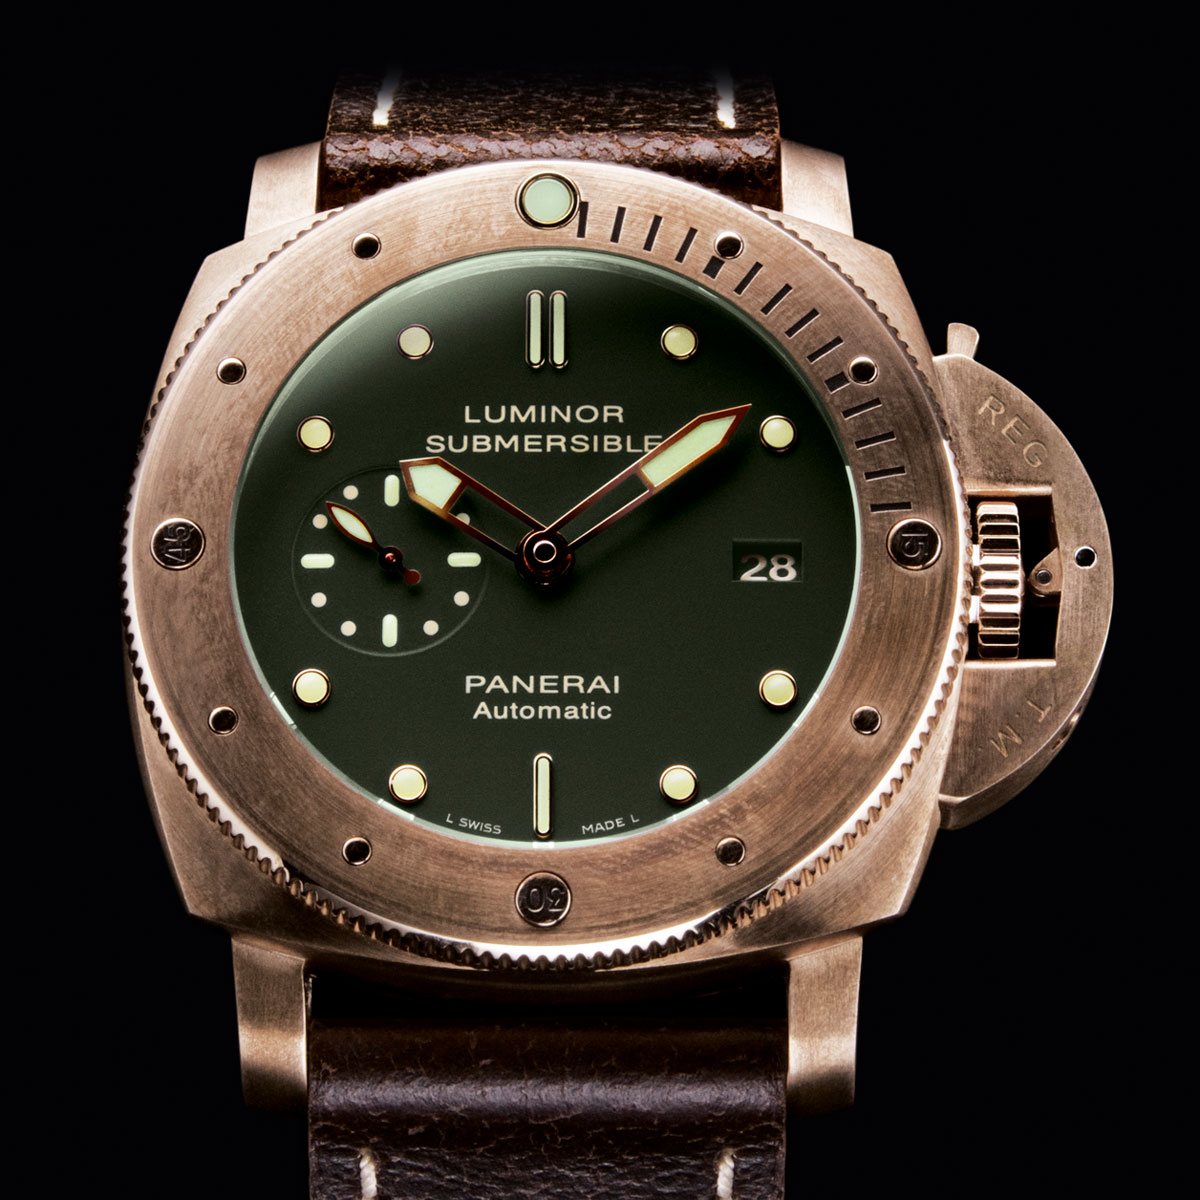 the watch quote photo panerai luminor submersible 3. Black Bedroom Furniture Sets. Home Design Ideas